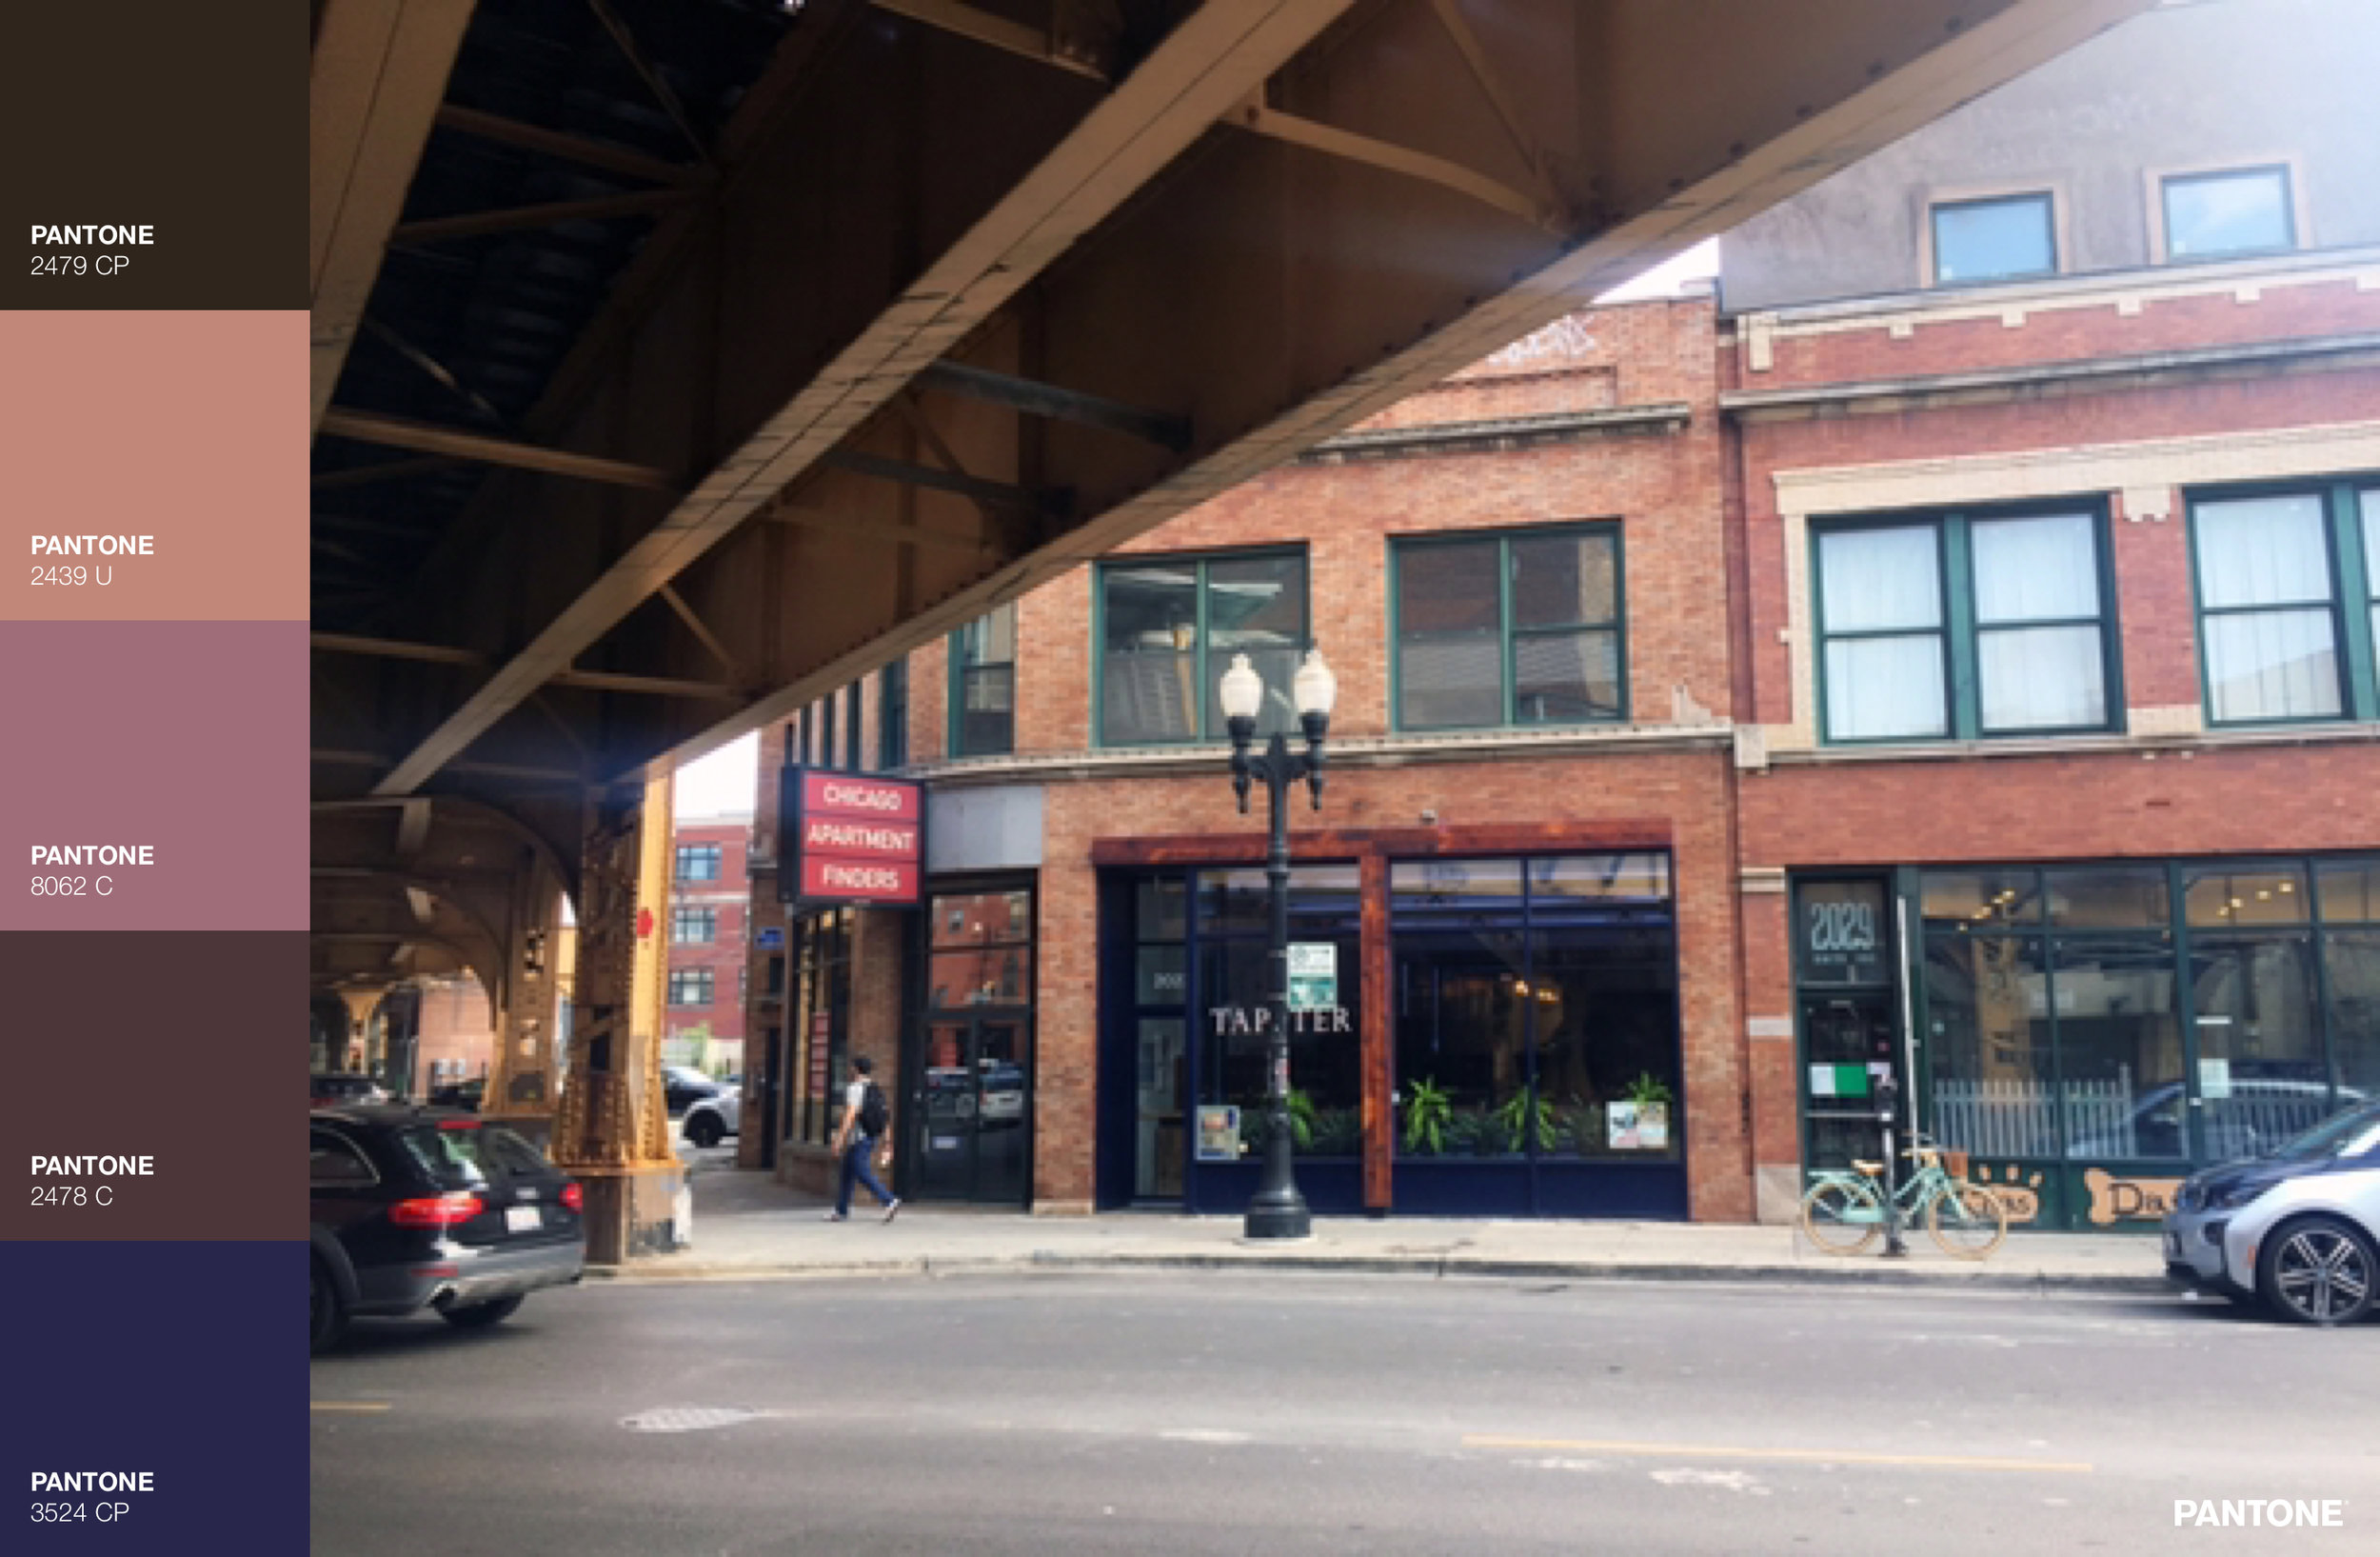 I snapped this photo underneath the Blue line, not far from the Damen stop. I love the rich warmth supplemented by the cool colored window frames. Also that bike across the street on the right is adorable & it posed so well for the photo.